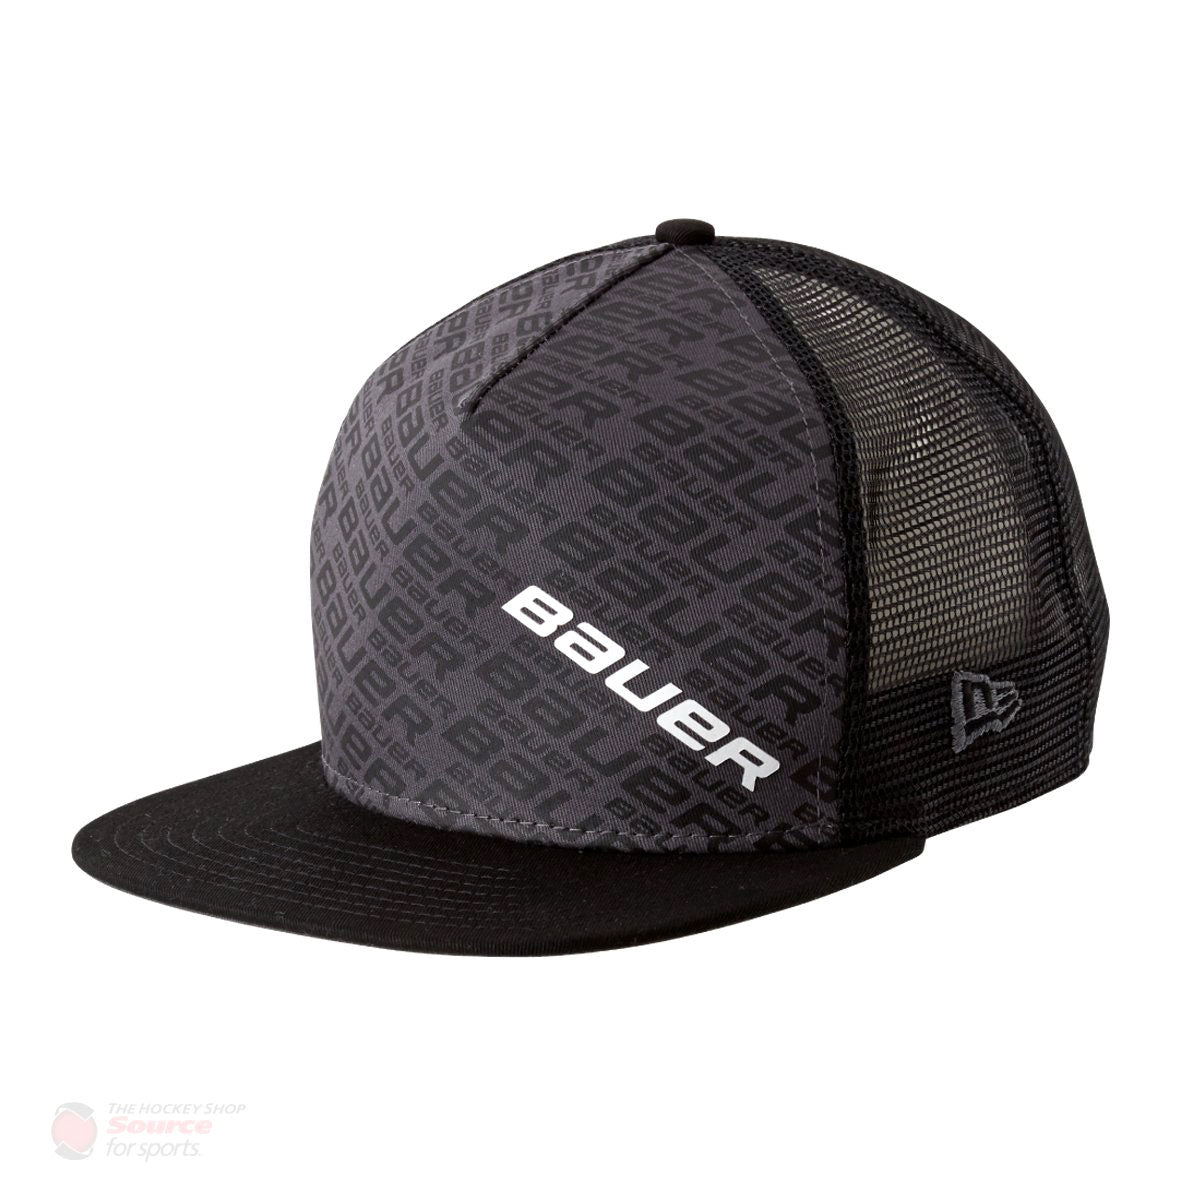 Bauer 9Fifty Repeat Snapback Hat